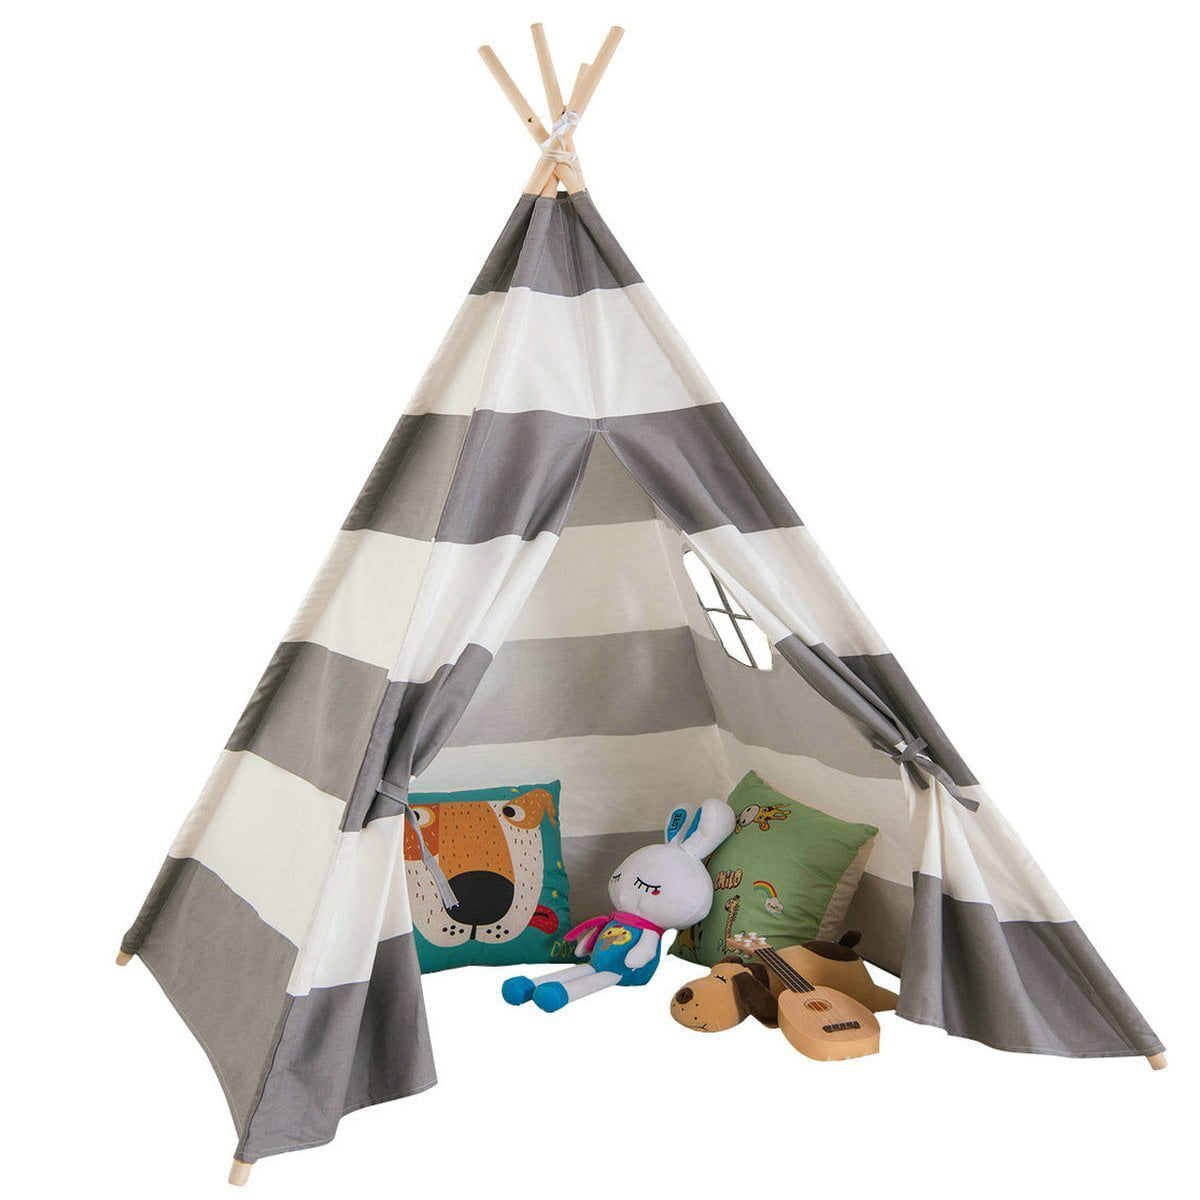 Giant Canvas Kids Teepee Play Tent, Grey Stripes by